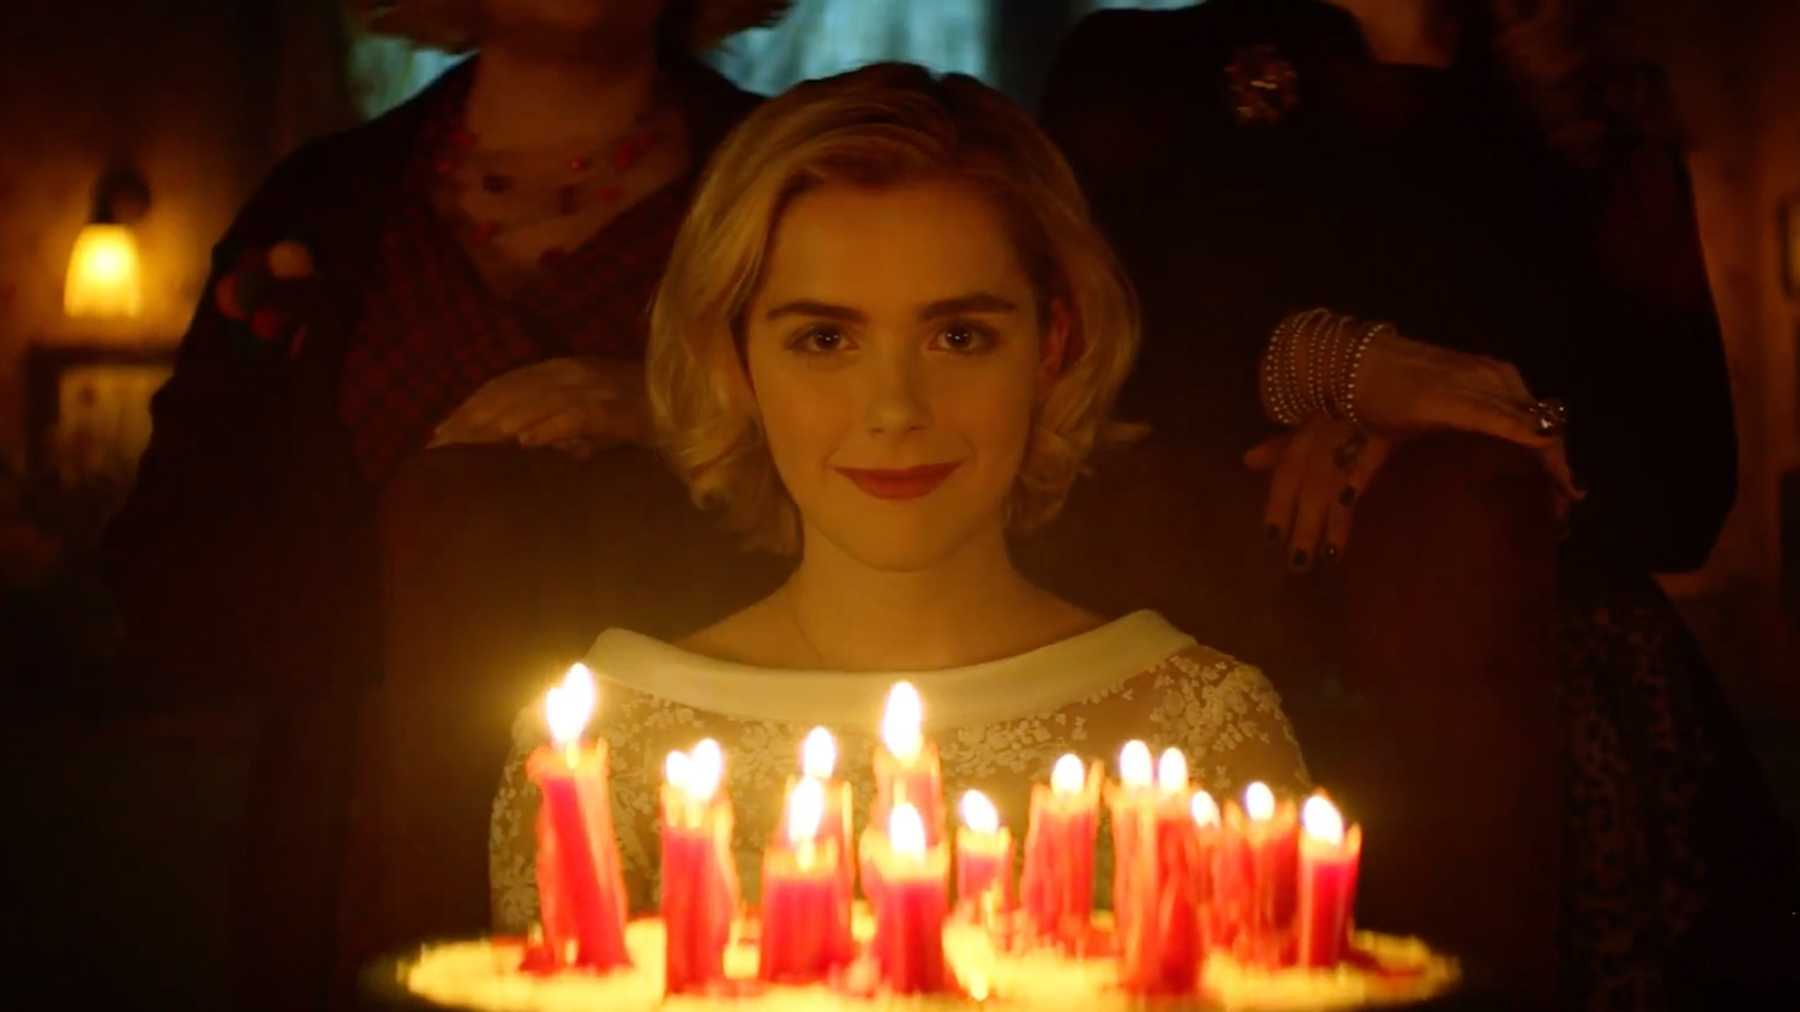 New Trailer For The Chilling Adventures Of Sabrina Movies Empire